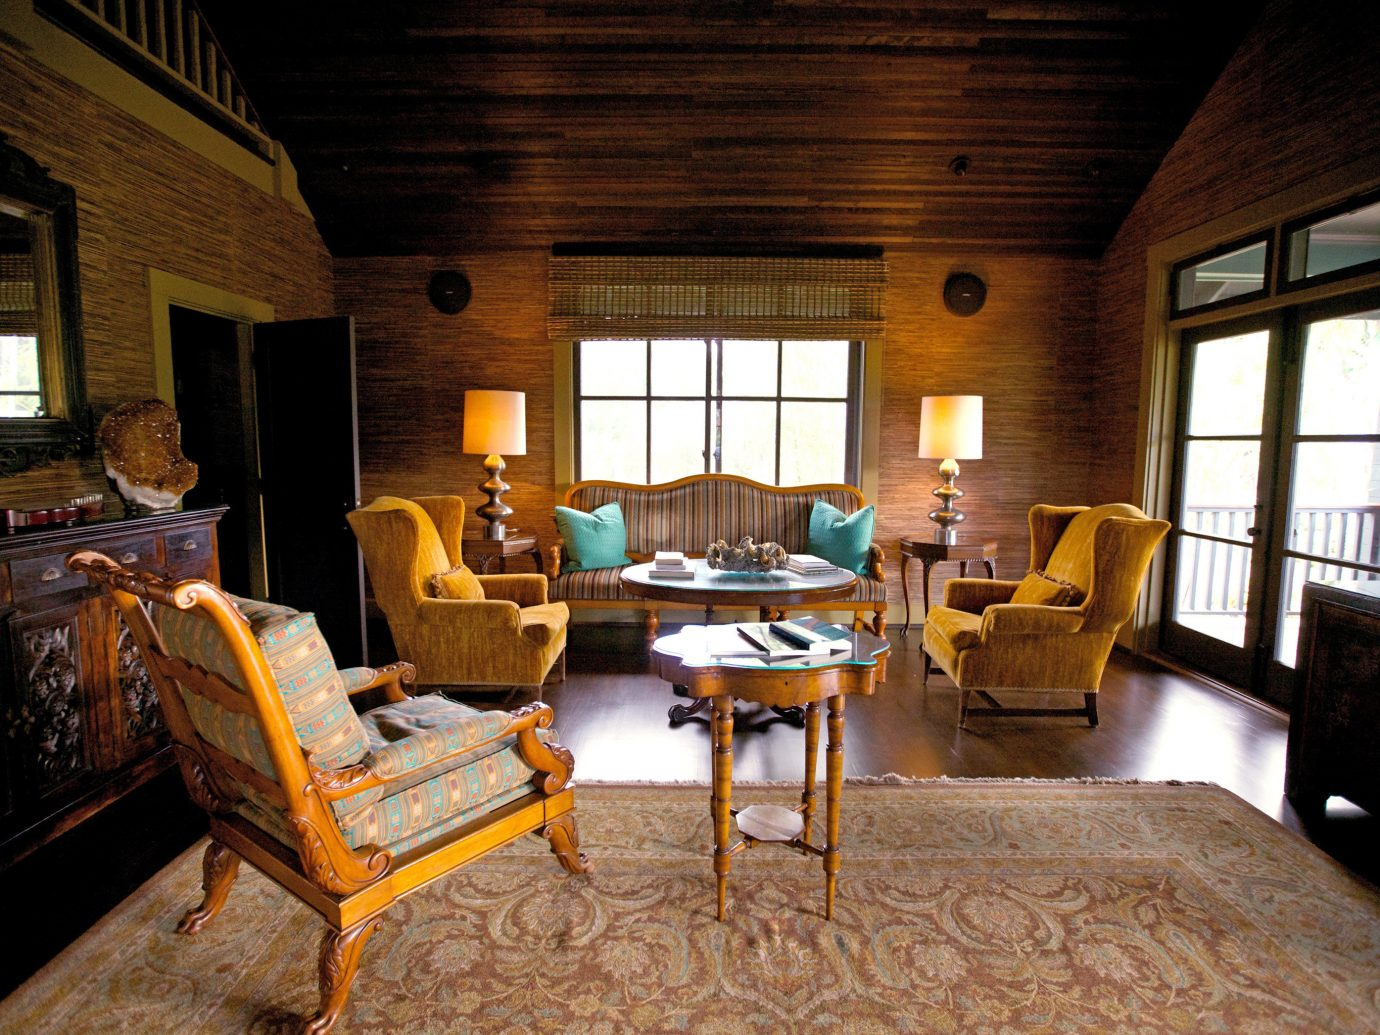 Beach Boutique Hotels Eco Hotels Lounge Luxury Travel Modern Romance floor indoor room Living chair window property estate ceiling building house home living room cottage log cabin furniture hardwood farmhouse interior design Villa real estate wood mansion area